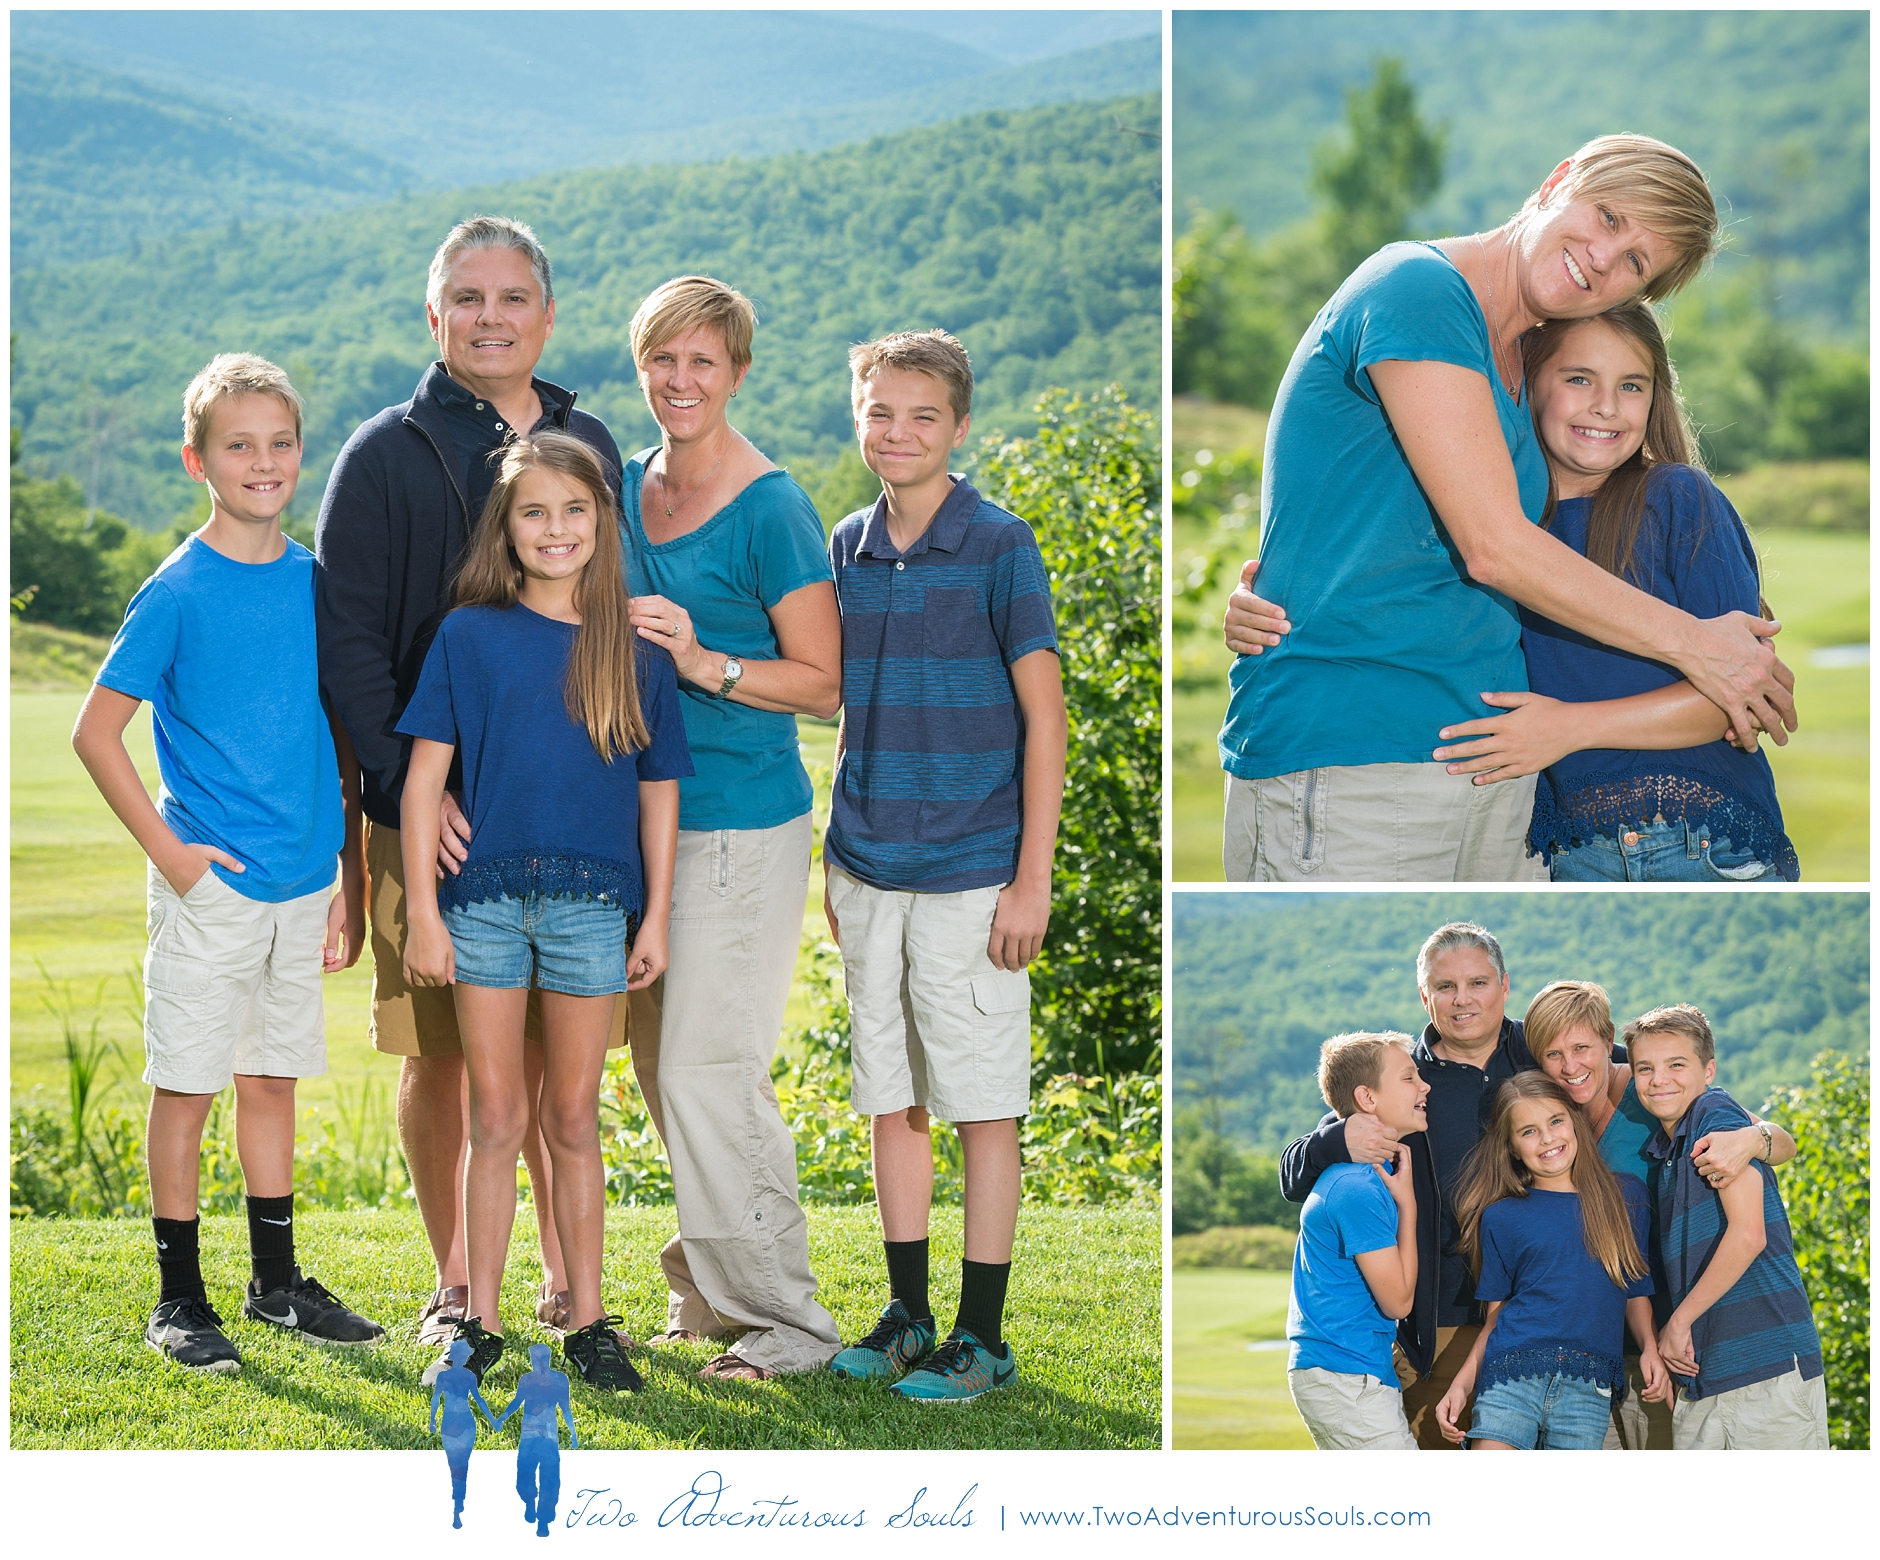 Sunday River Family Portraits in Newry Maine - Extended Family Portraits